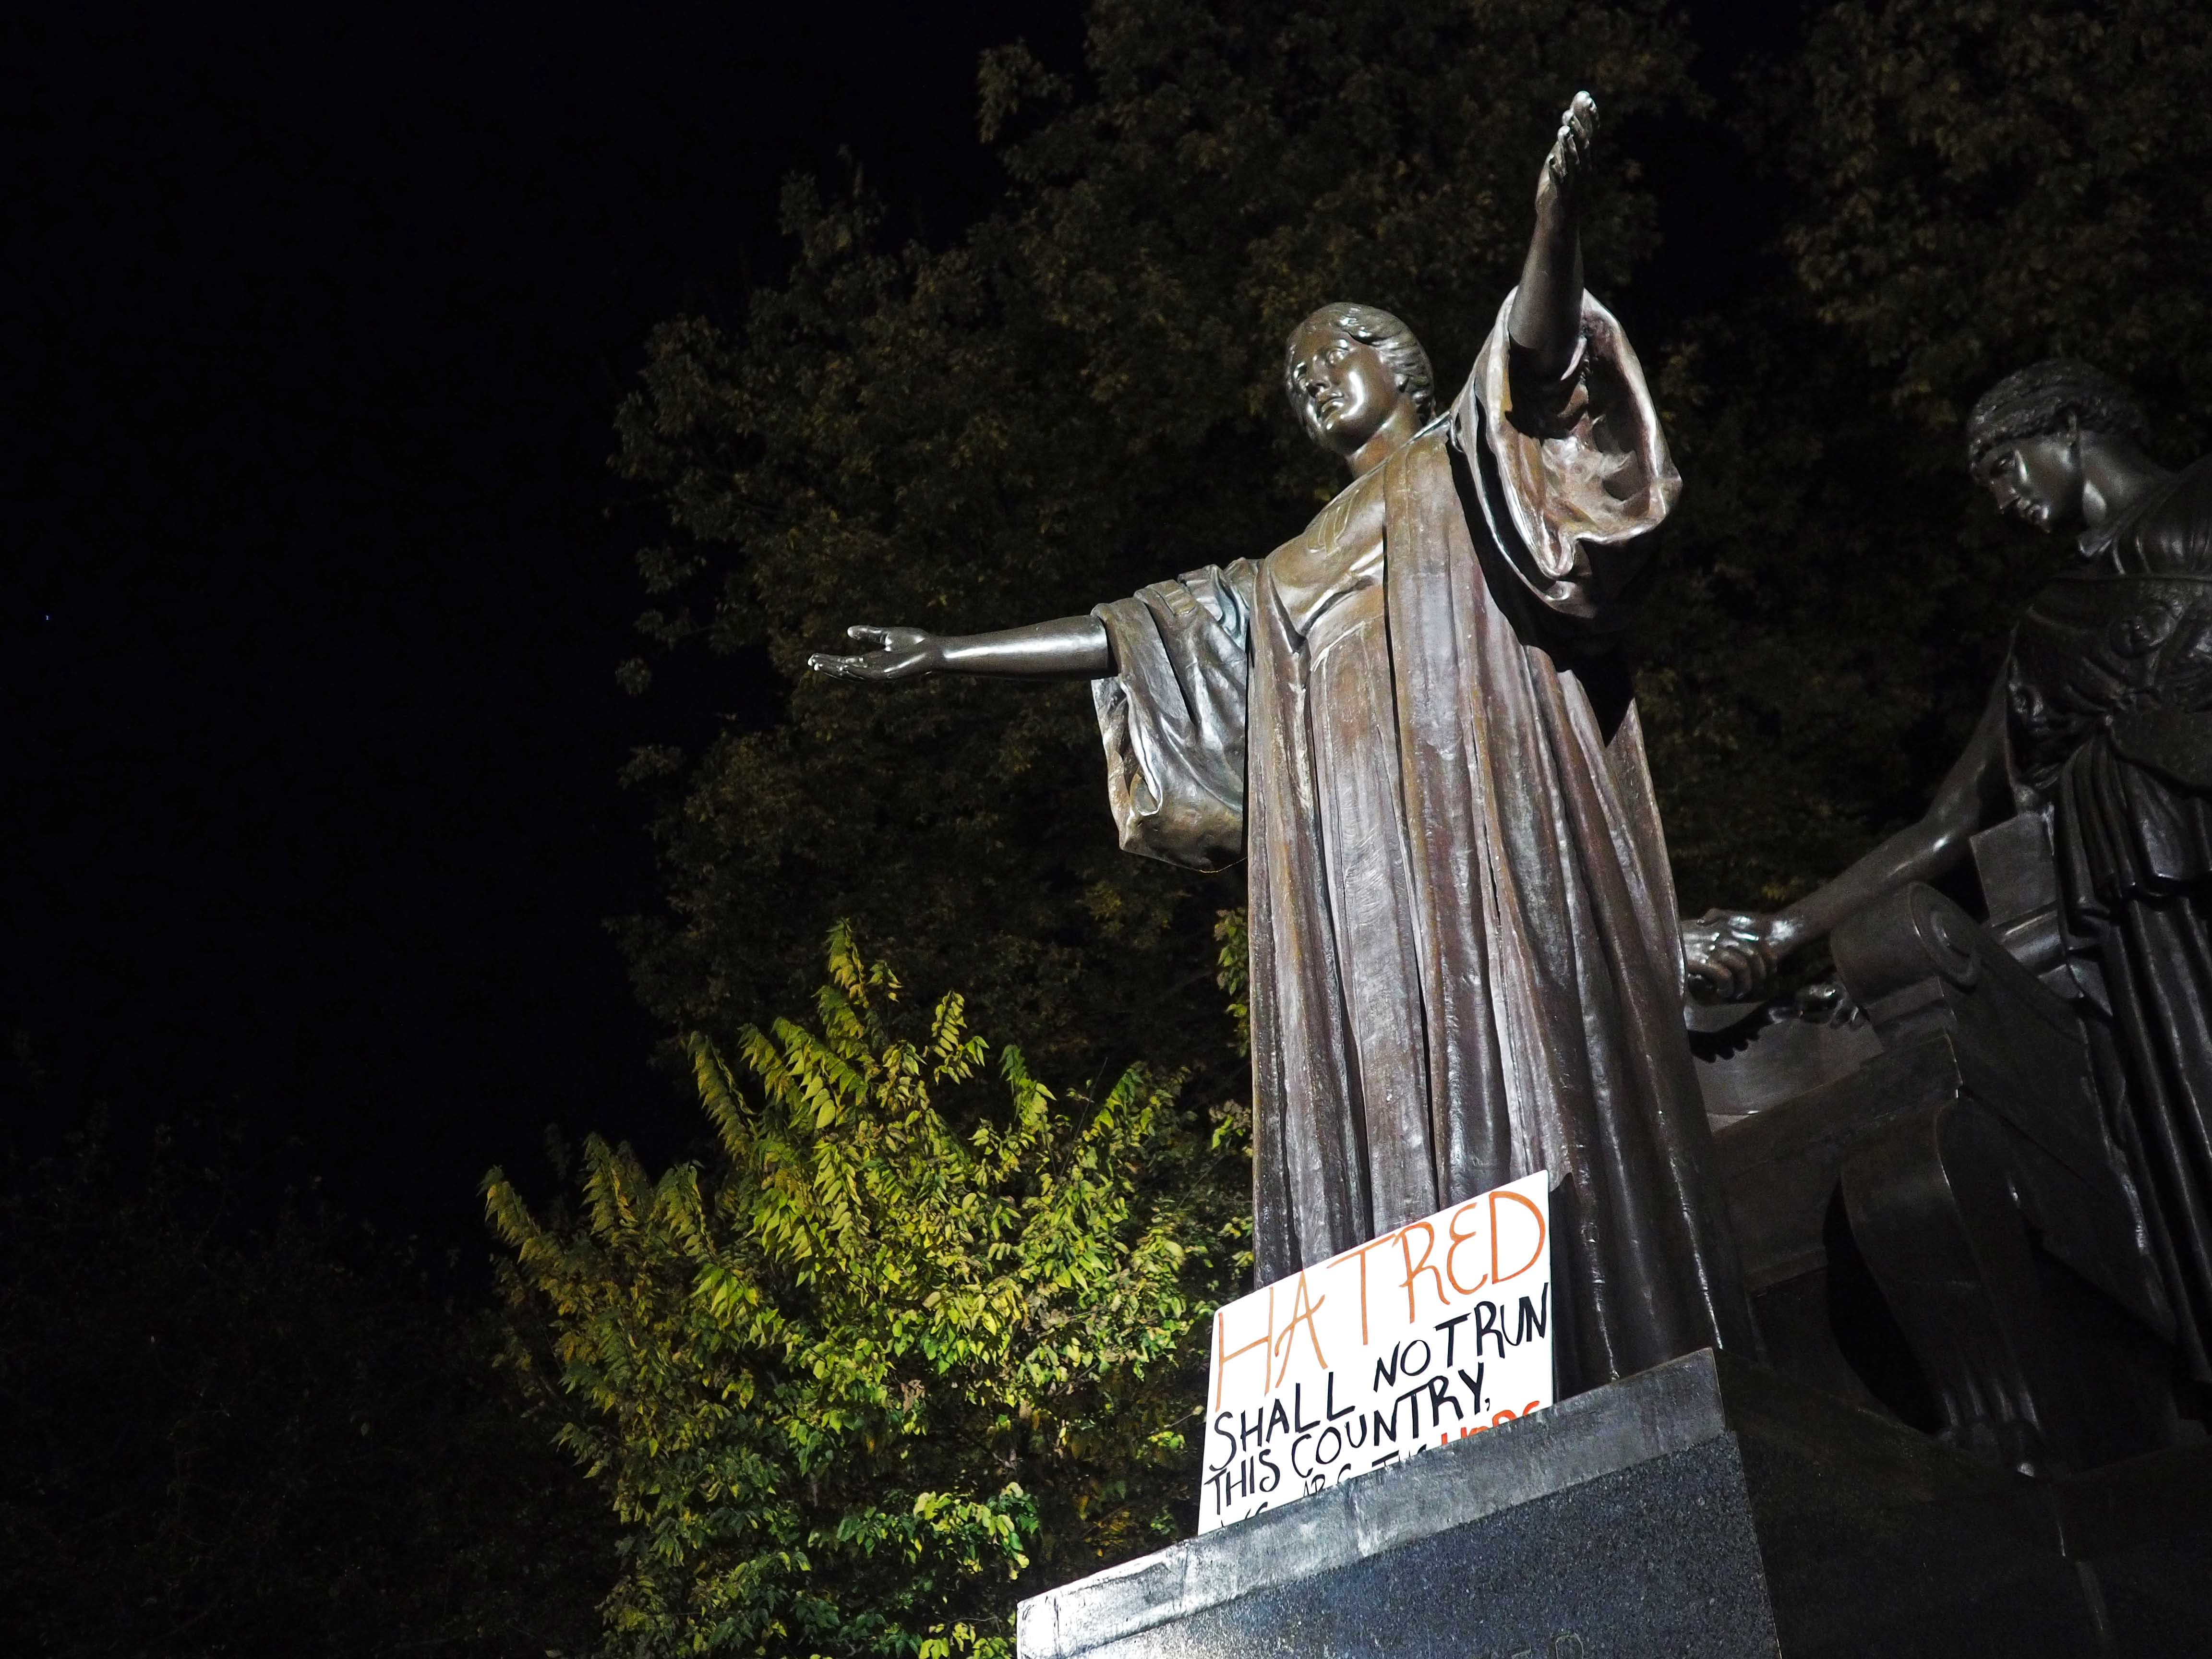 Students rally at Alma Mater to express dissatisfaction with the president elect on Wednesday night.